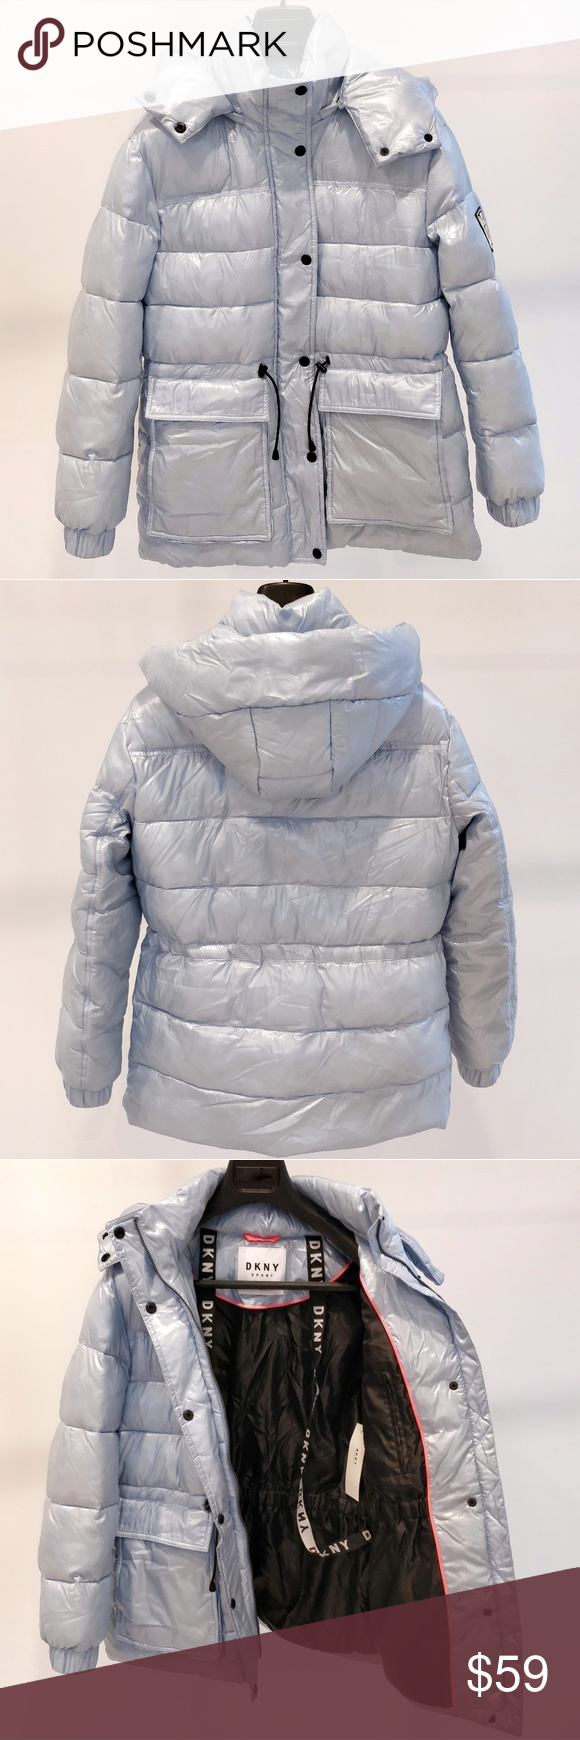 Dkny Hooded Puffer Jacket Light Blue Size S Nwt Clothes Design Jackets Jackets For Women [ 1740 x 580 Pixel ]